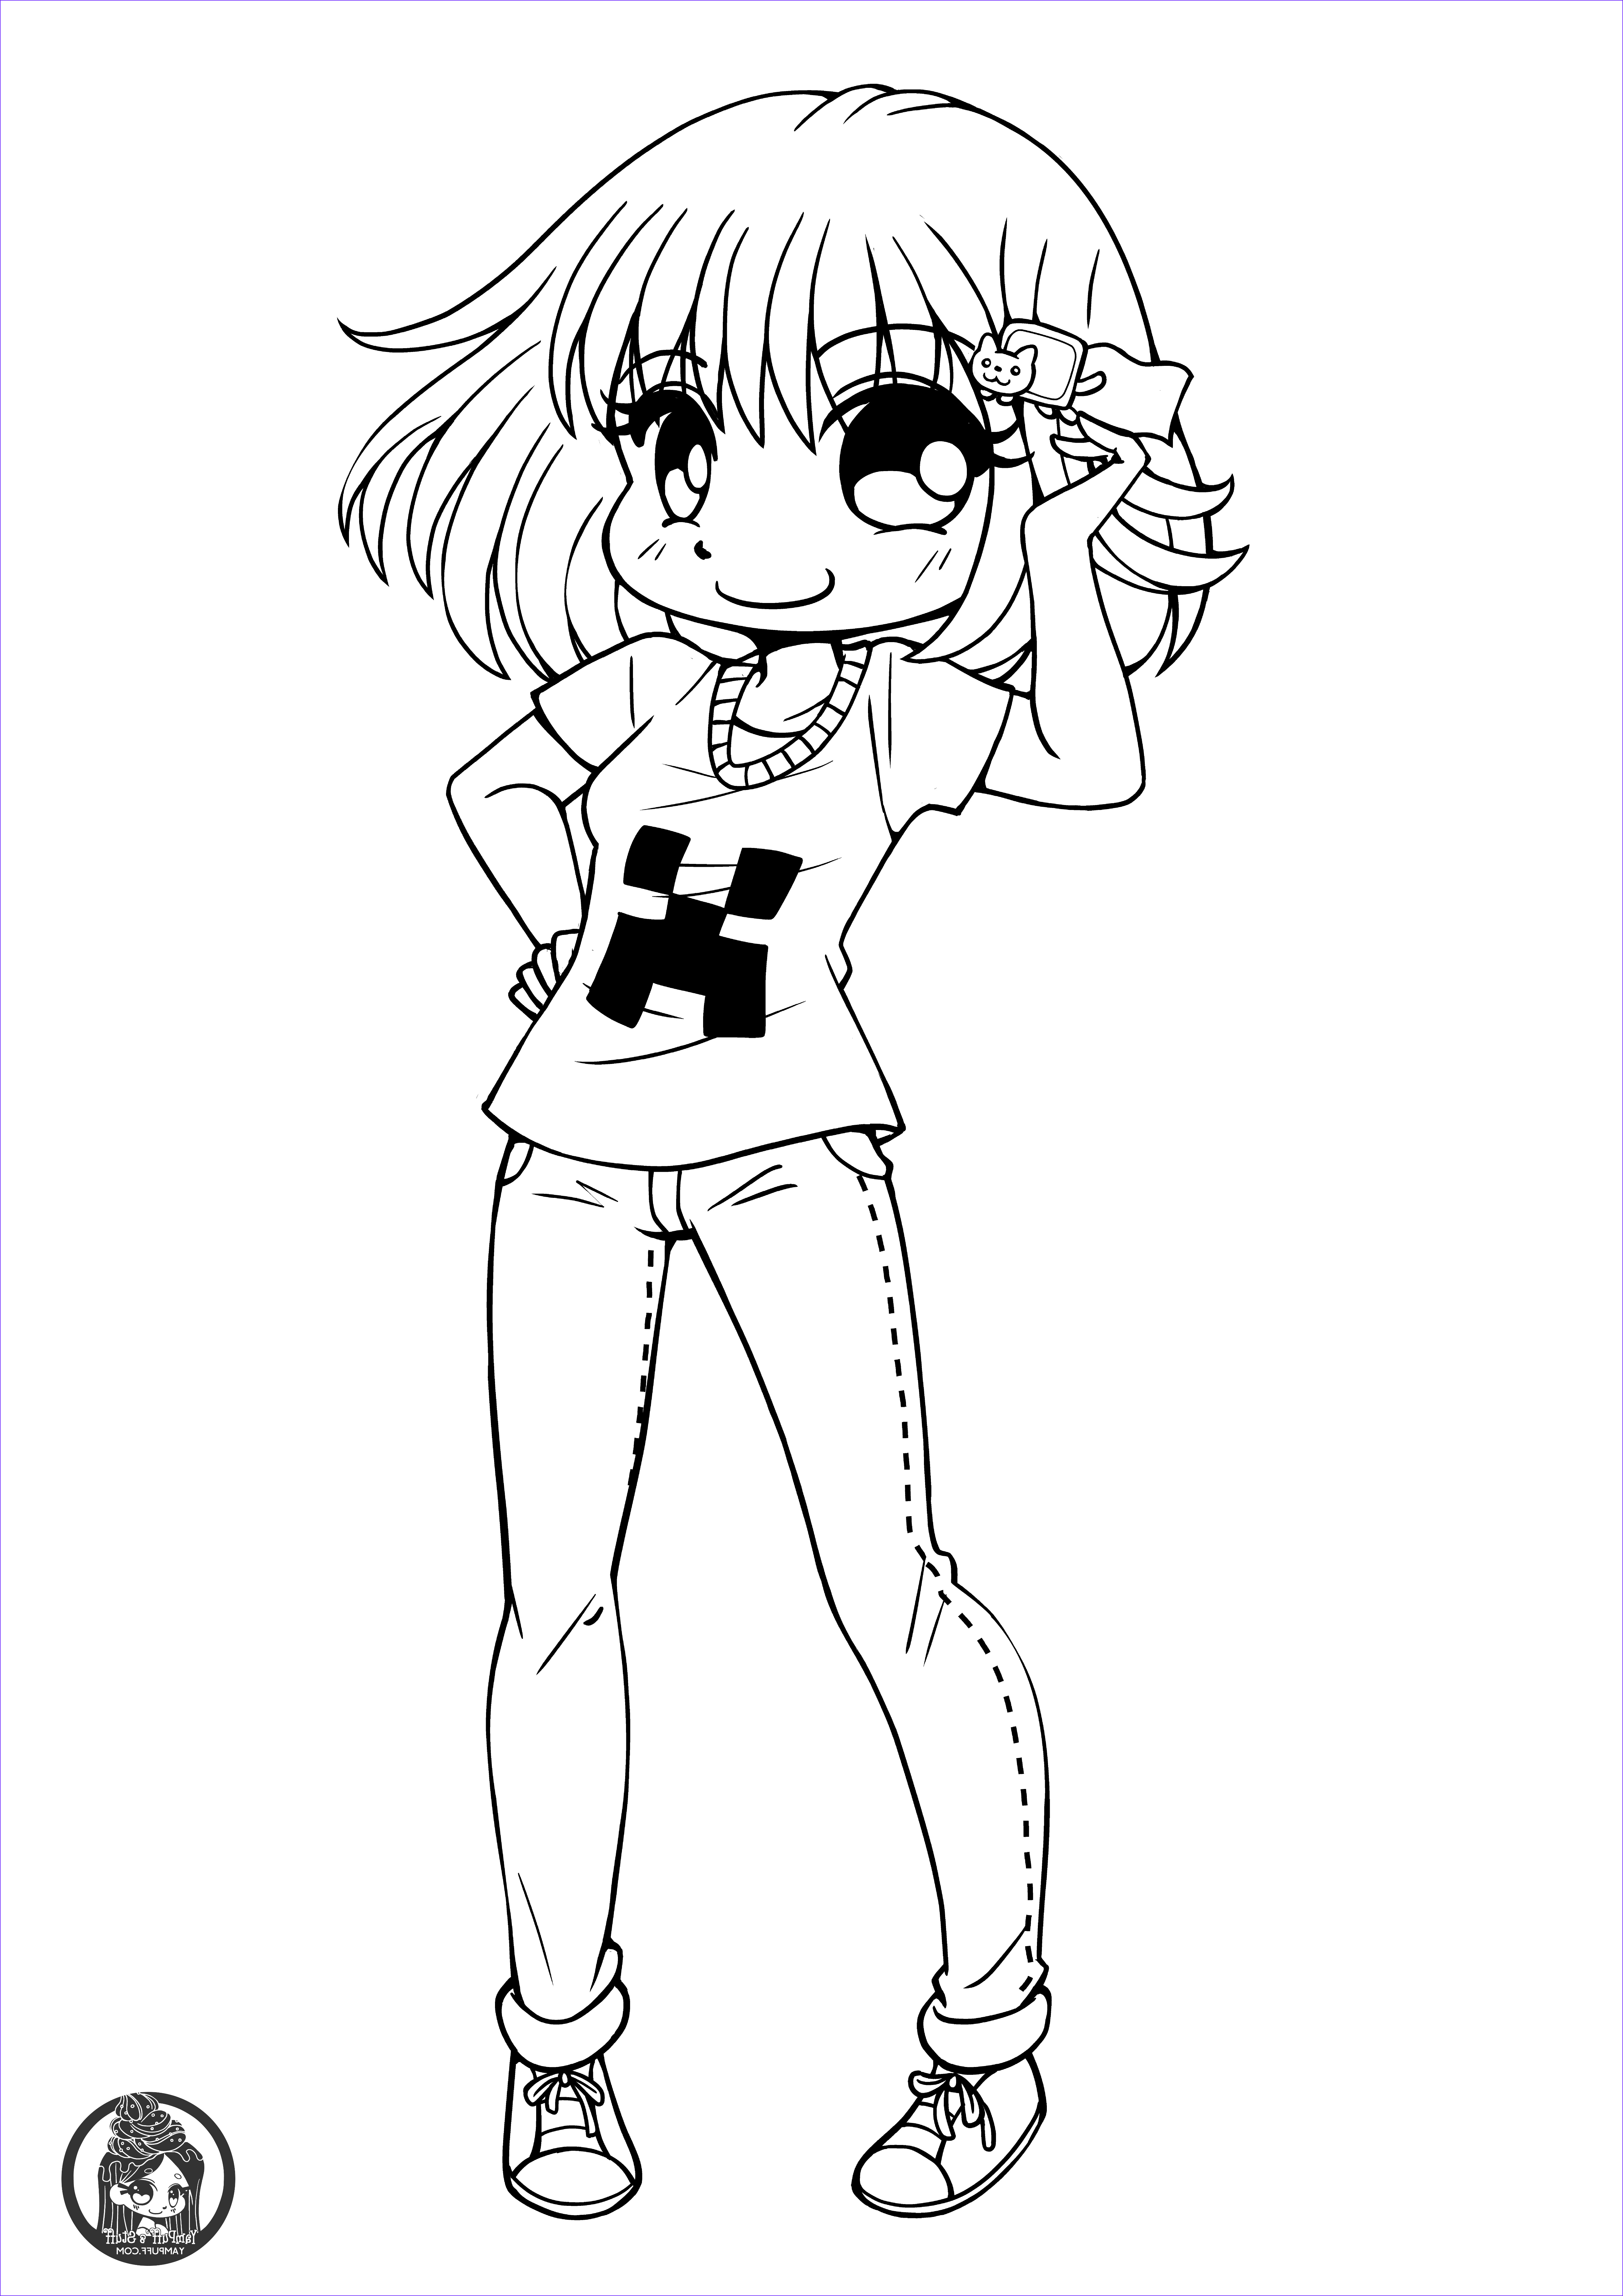 Cute Anime Coloring Pages Inspirational Gallery Chibis Free Chibi Coloring Pages • Yampuff S Stuff